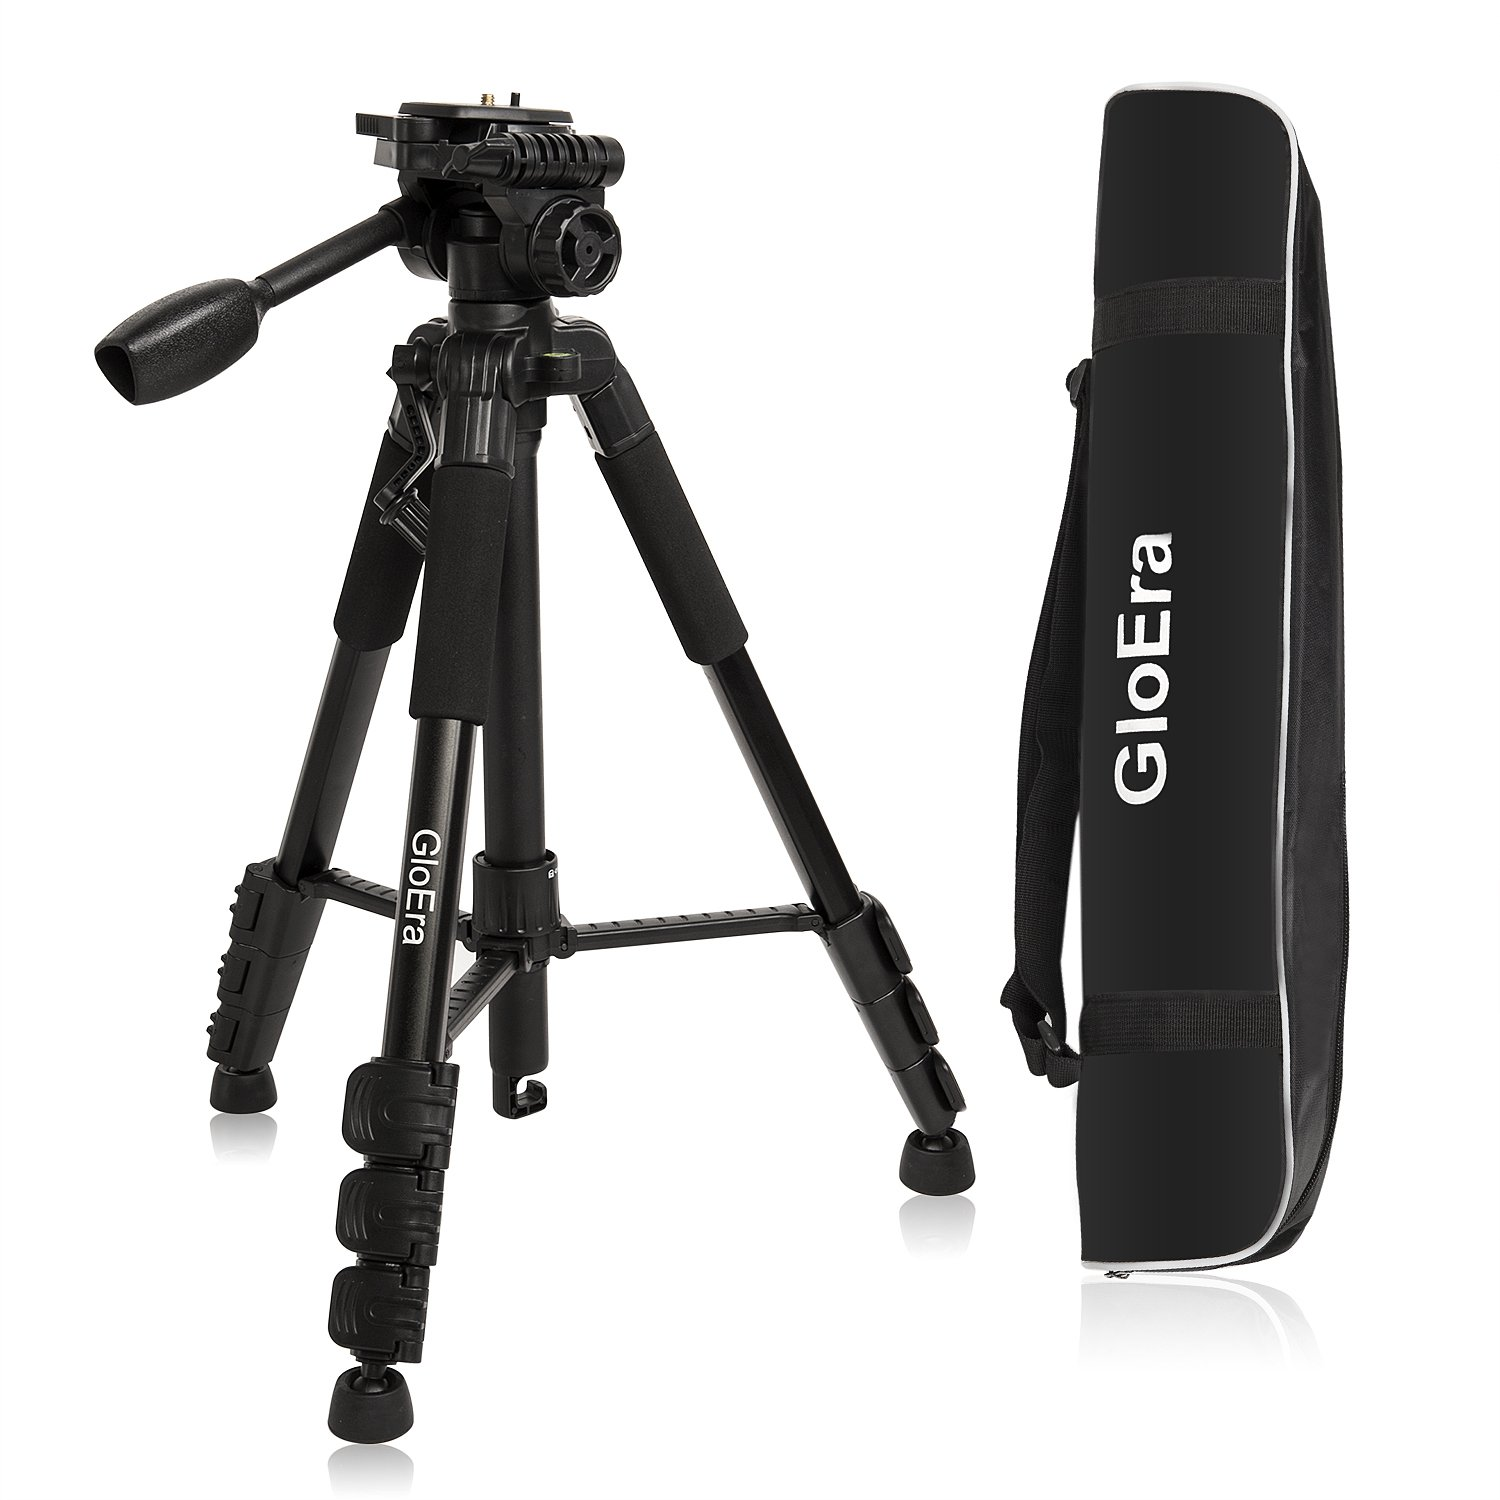 GloEra Camera Tripod Aluminum Portable Lightweight Camera Stand with Quick Release Mount for Canon Nikon Sony Samsung Olympus Panasonic Video Camcorder DSLR DV